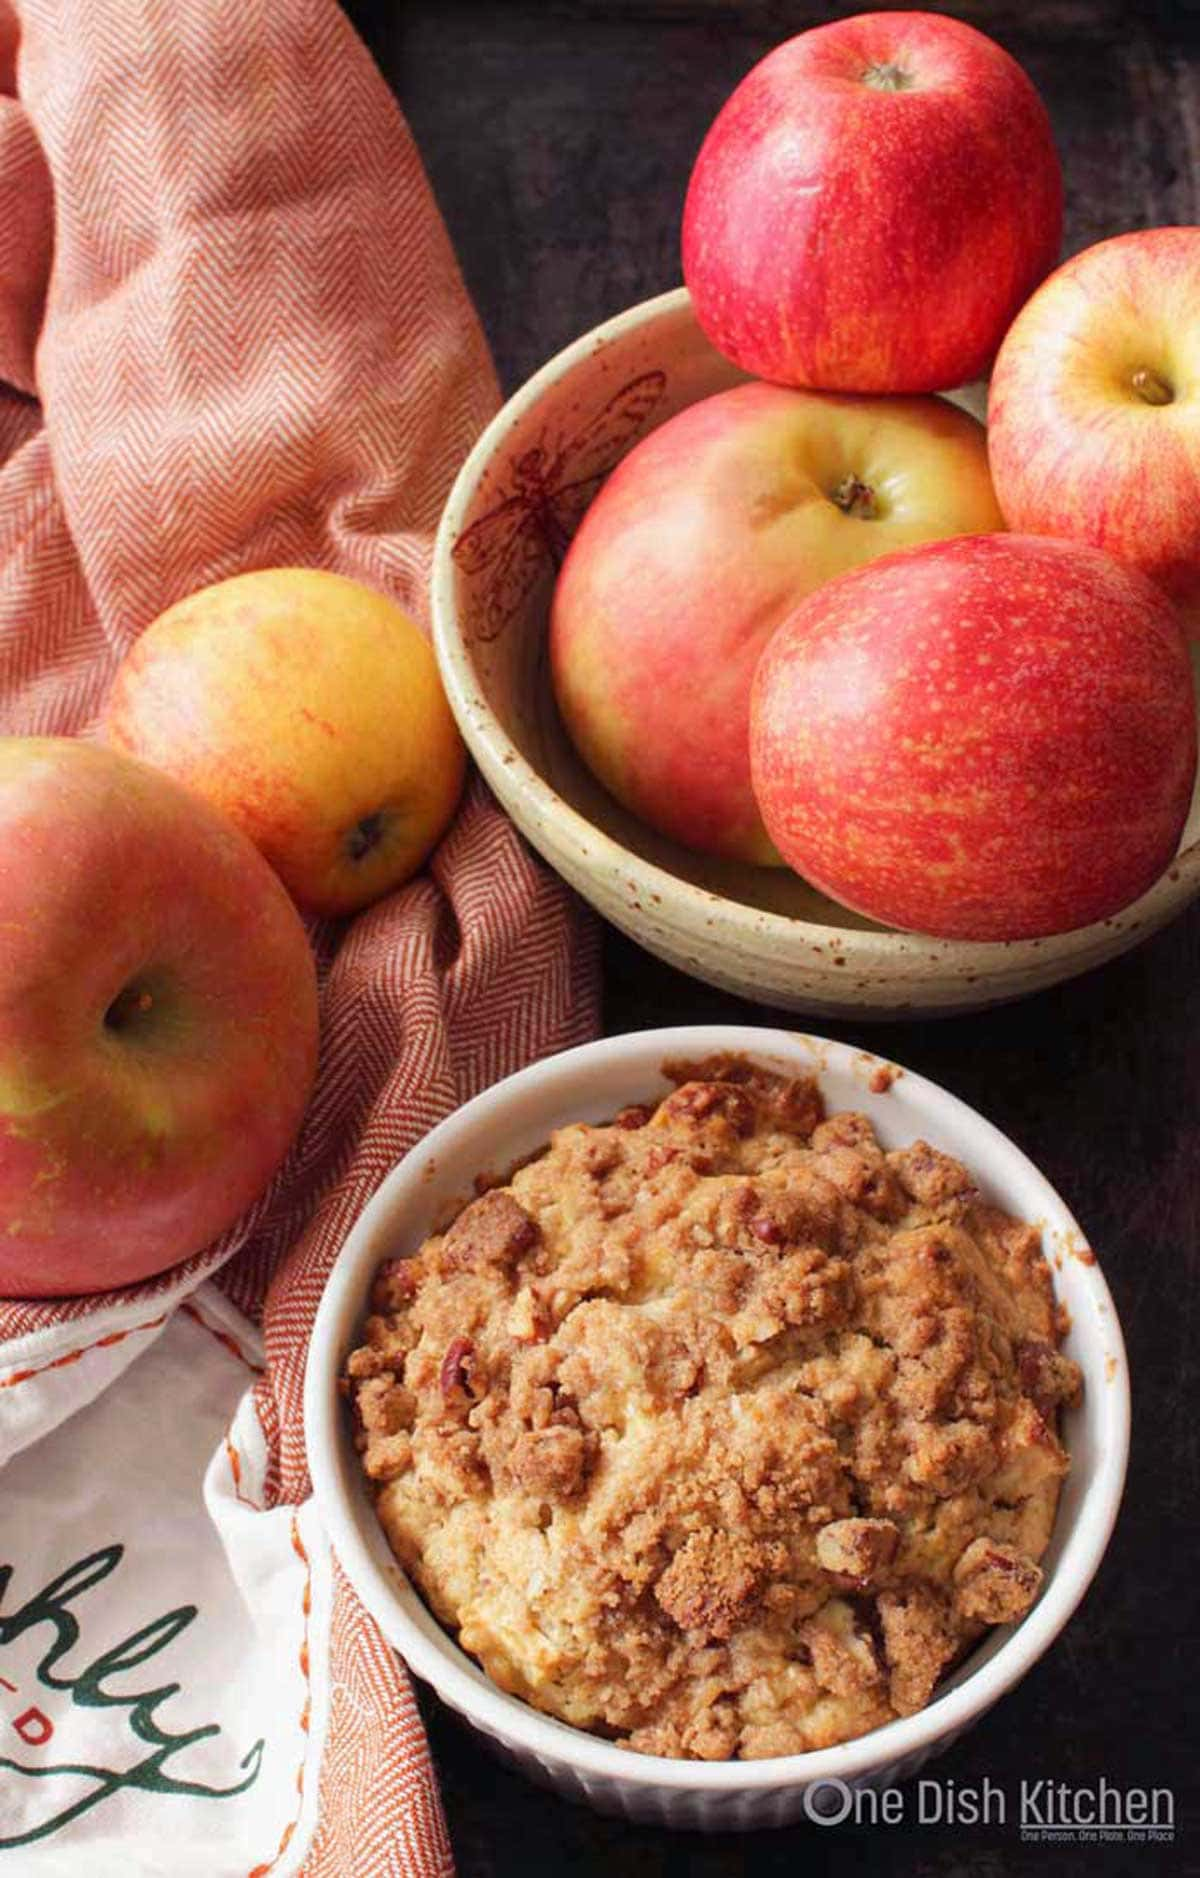 An overhead view of an apple muffin  baked in a ramekin topped with cinnamon streusel next to a bowl of apples